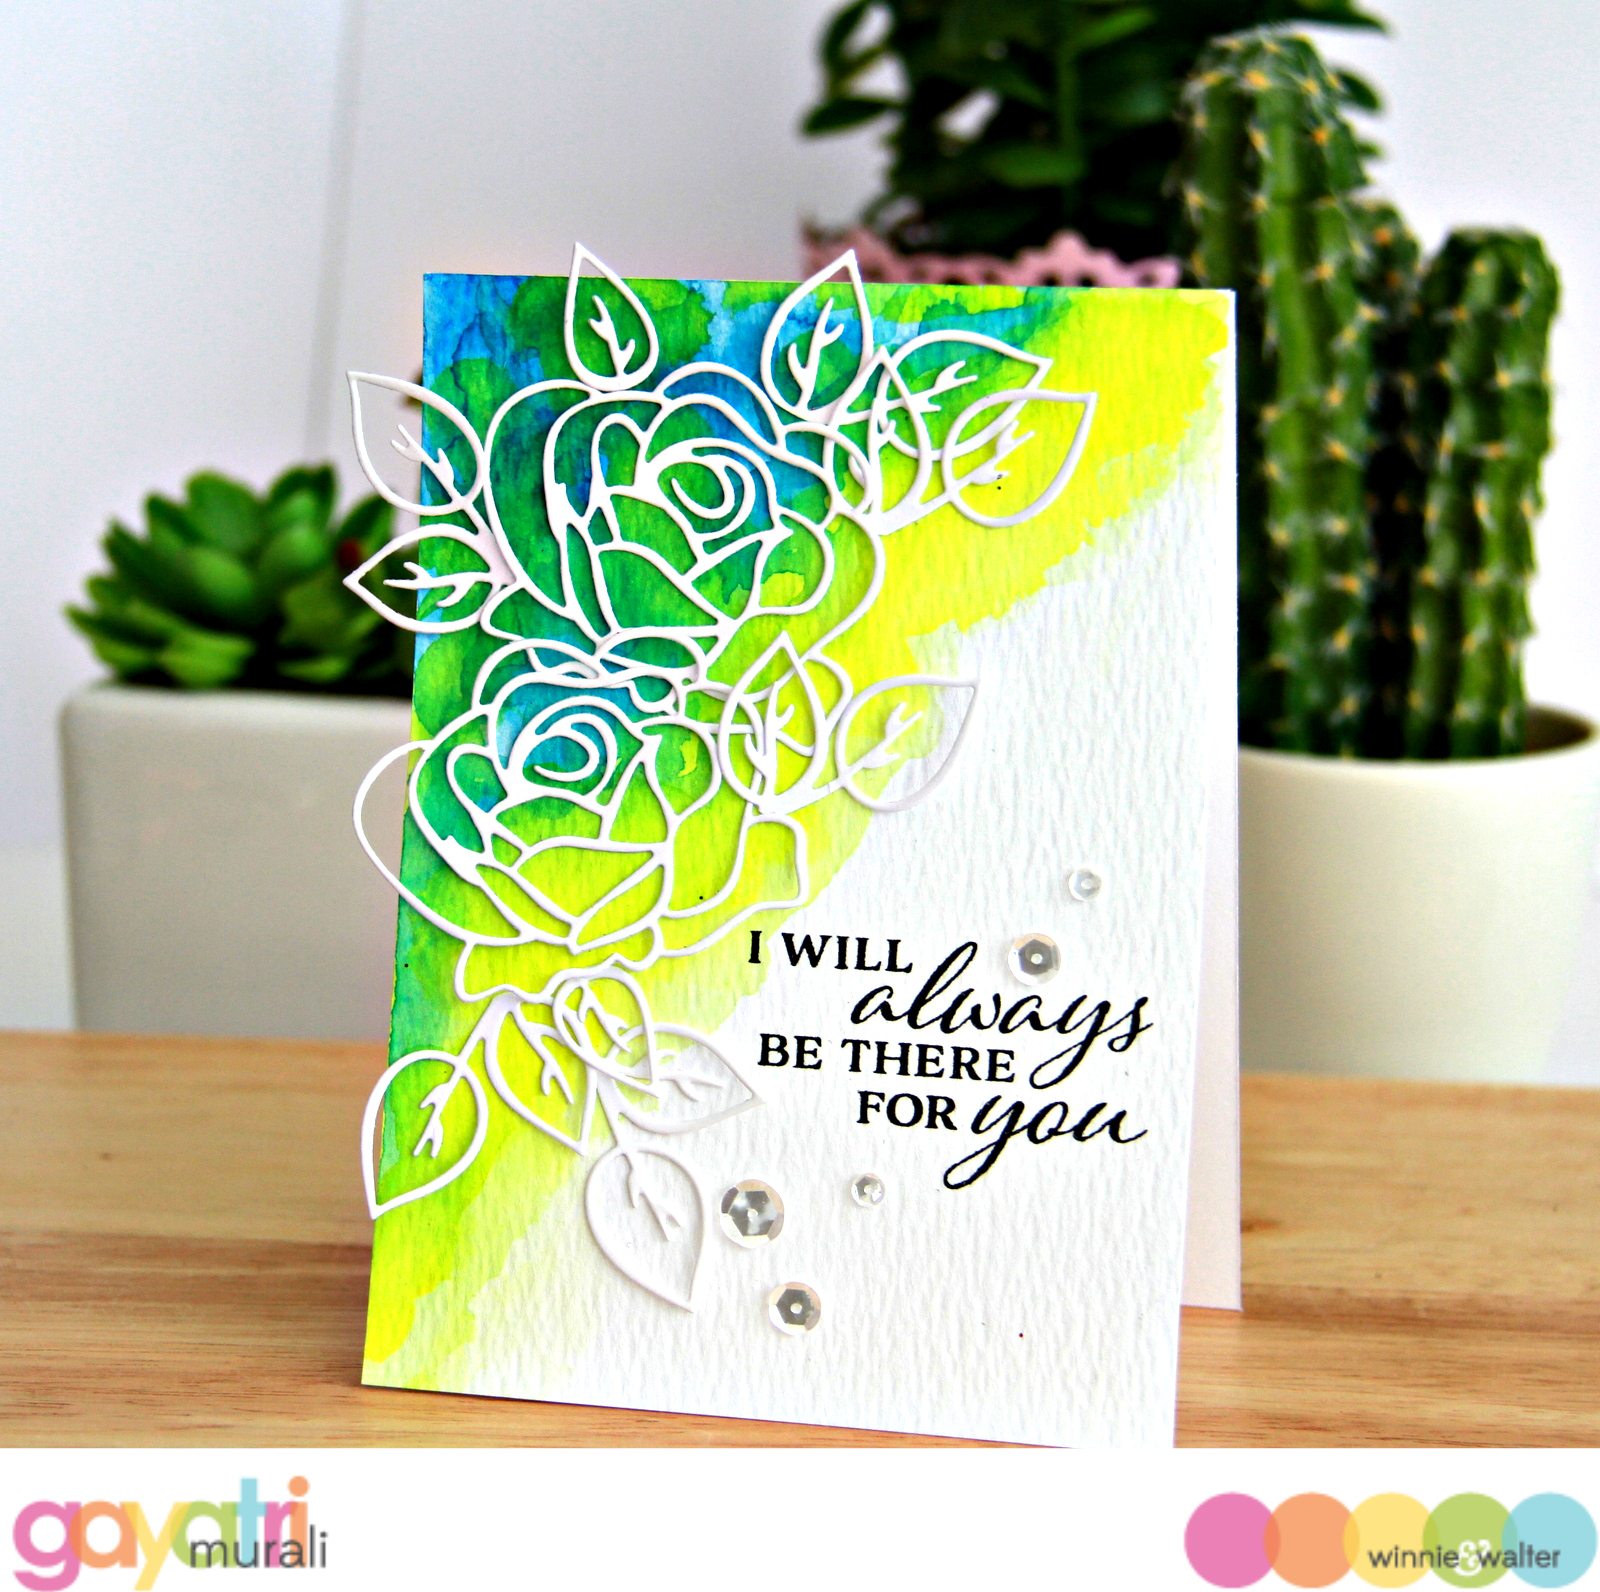 gayatri_Always for you card1